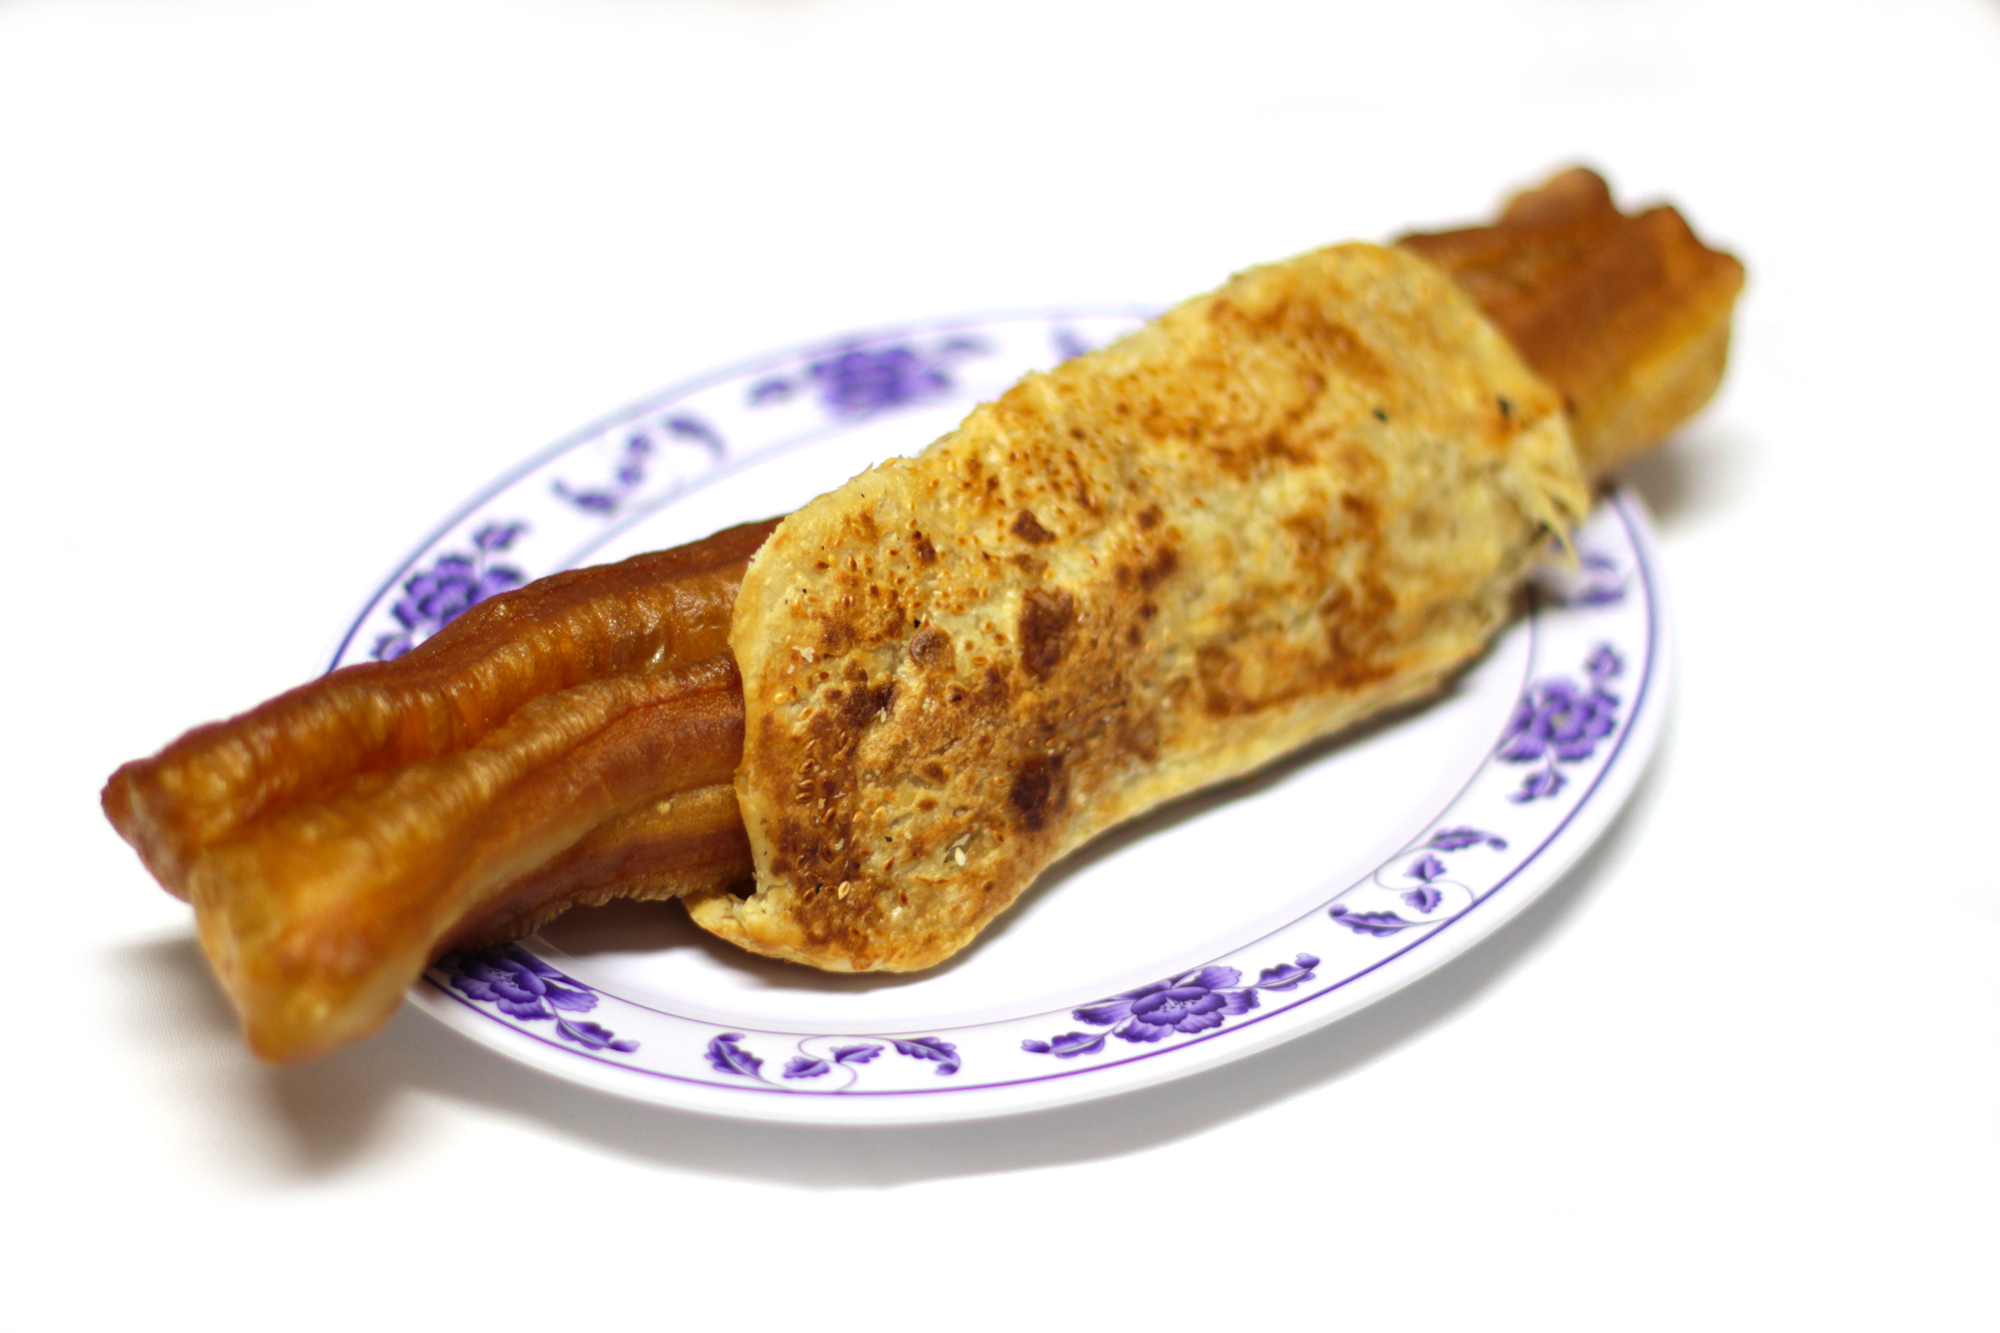 Shaobing you tiao (fried cruller wrapped in sesame flat bread) on a white ceramic plate against a white background.